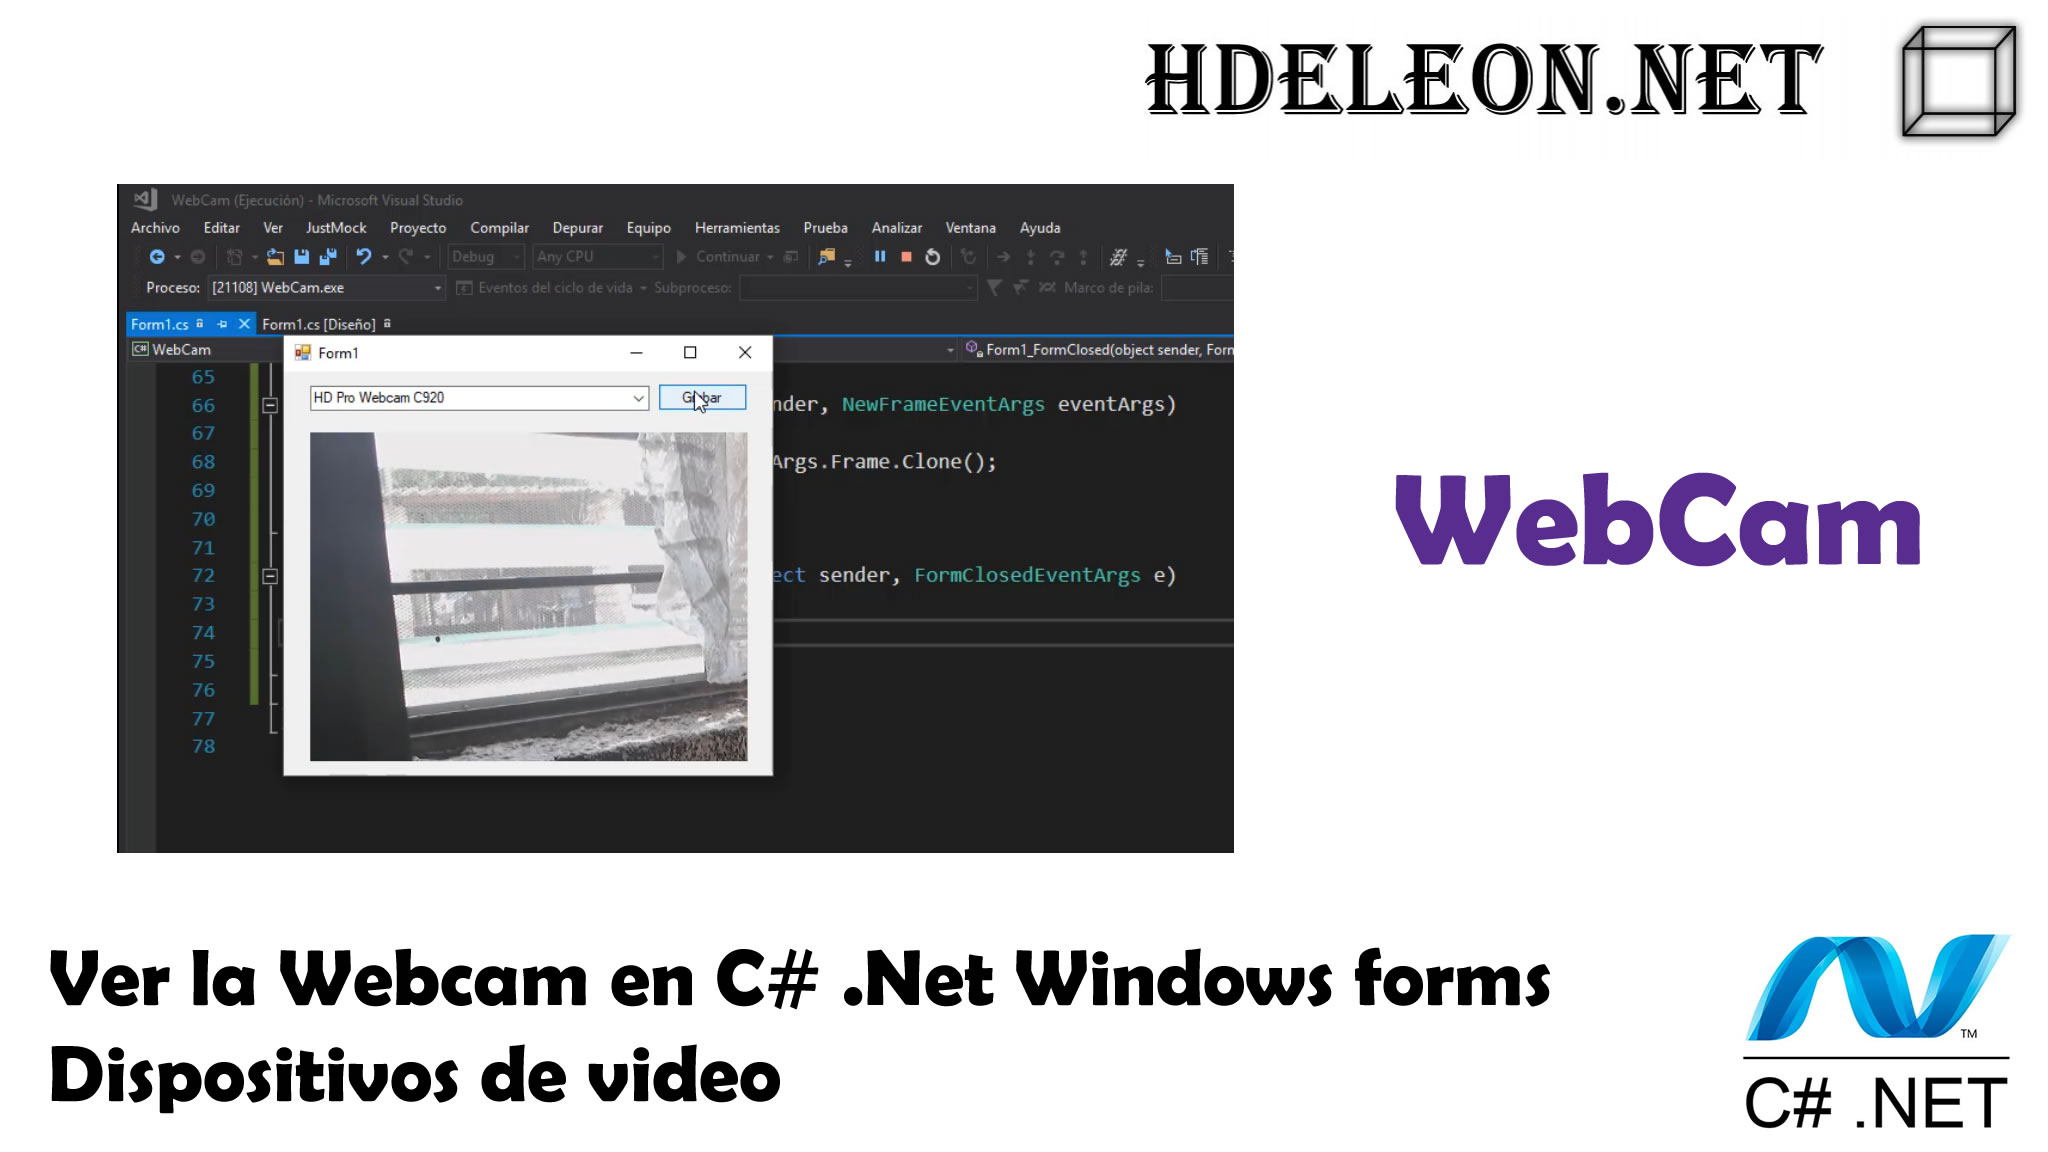 Ver la Webcam en C# .Net Windows forms, dispositivos de video